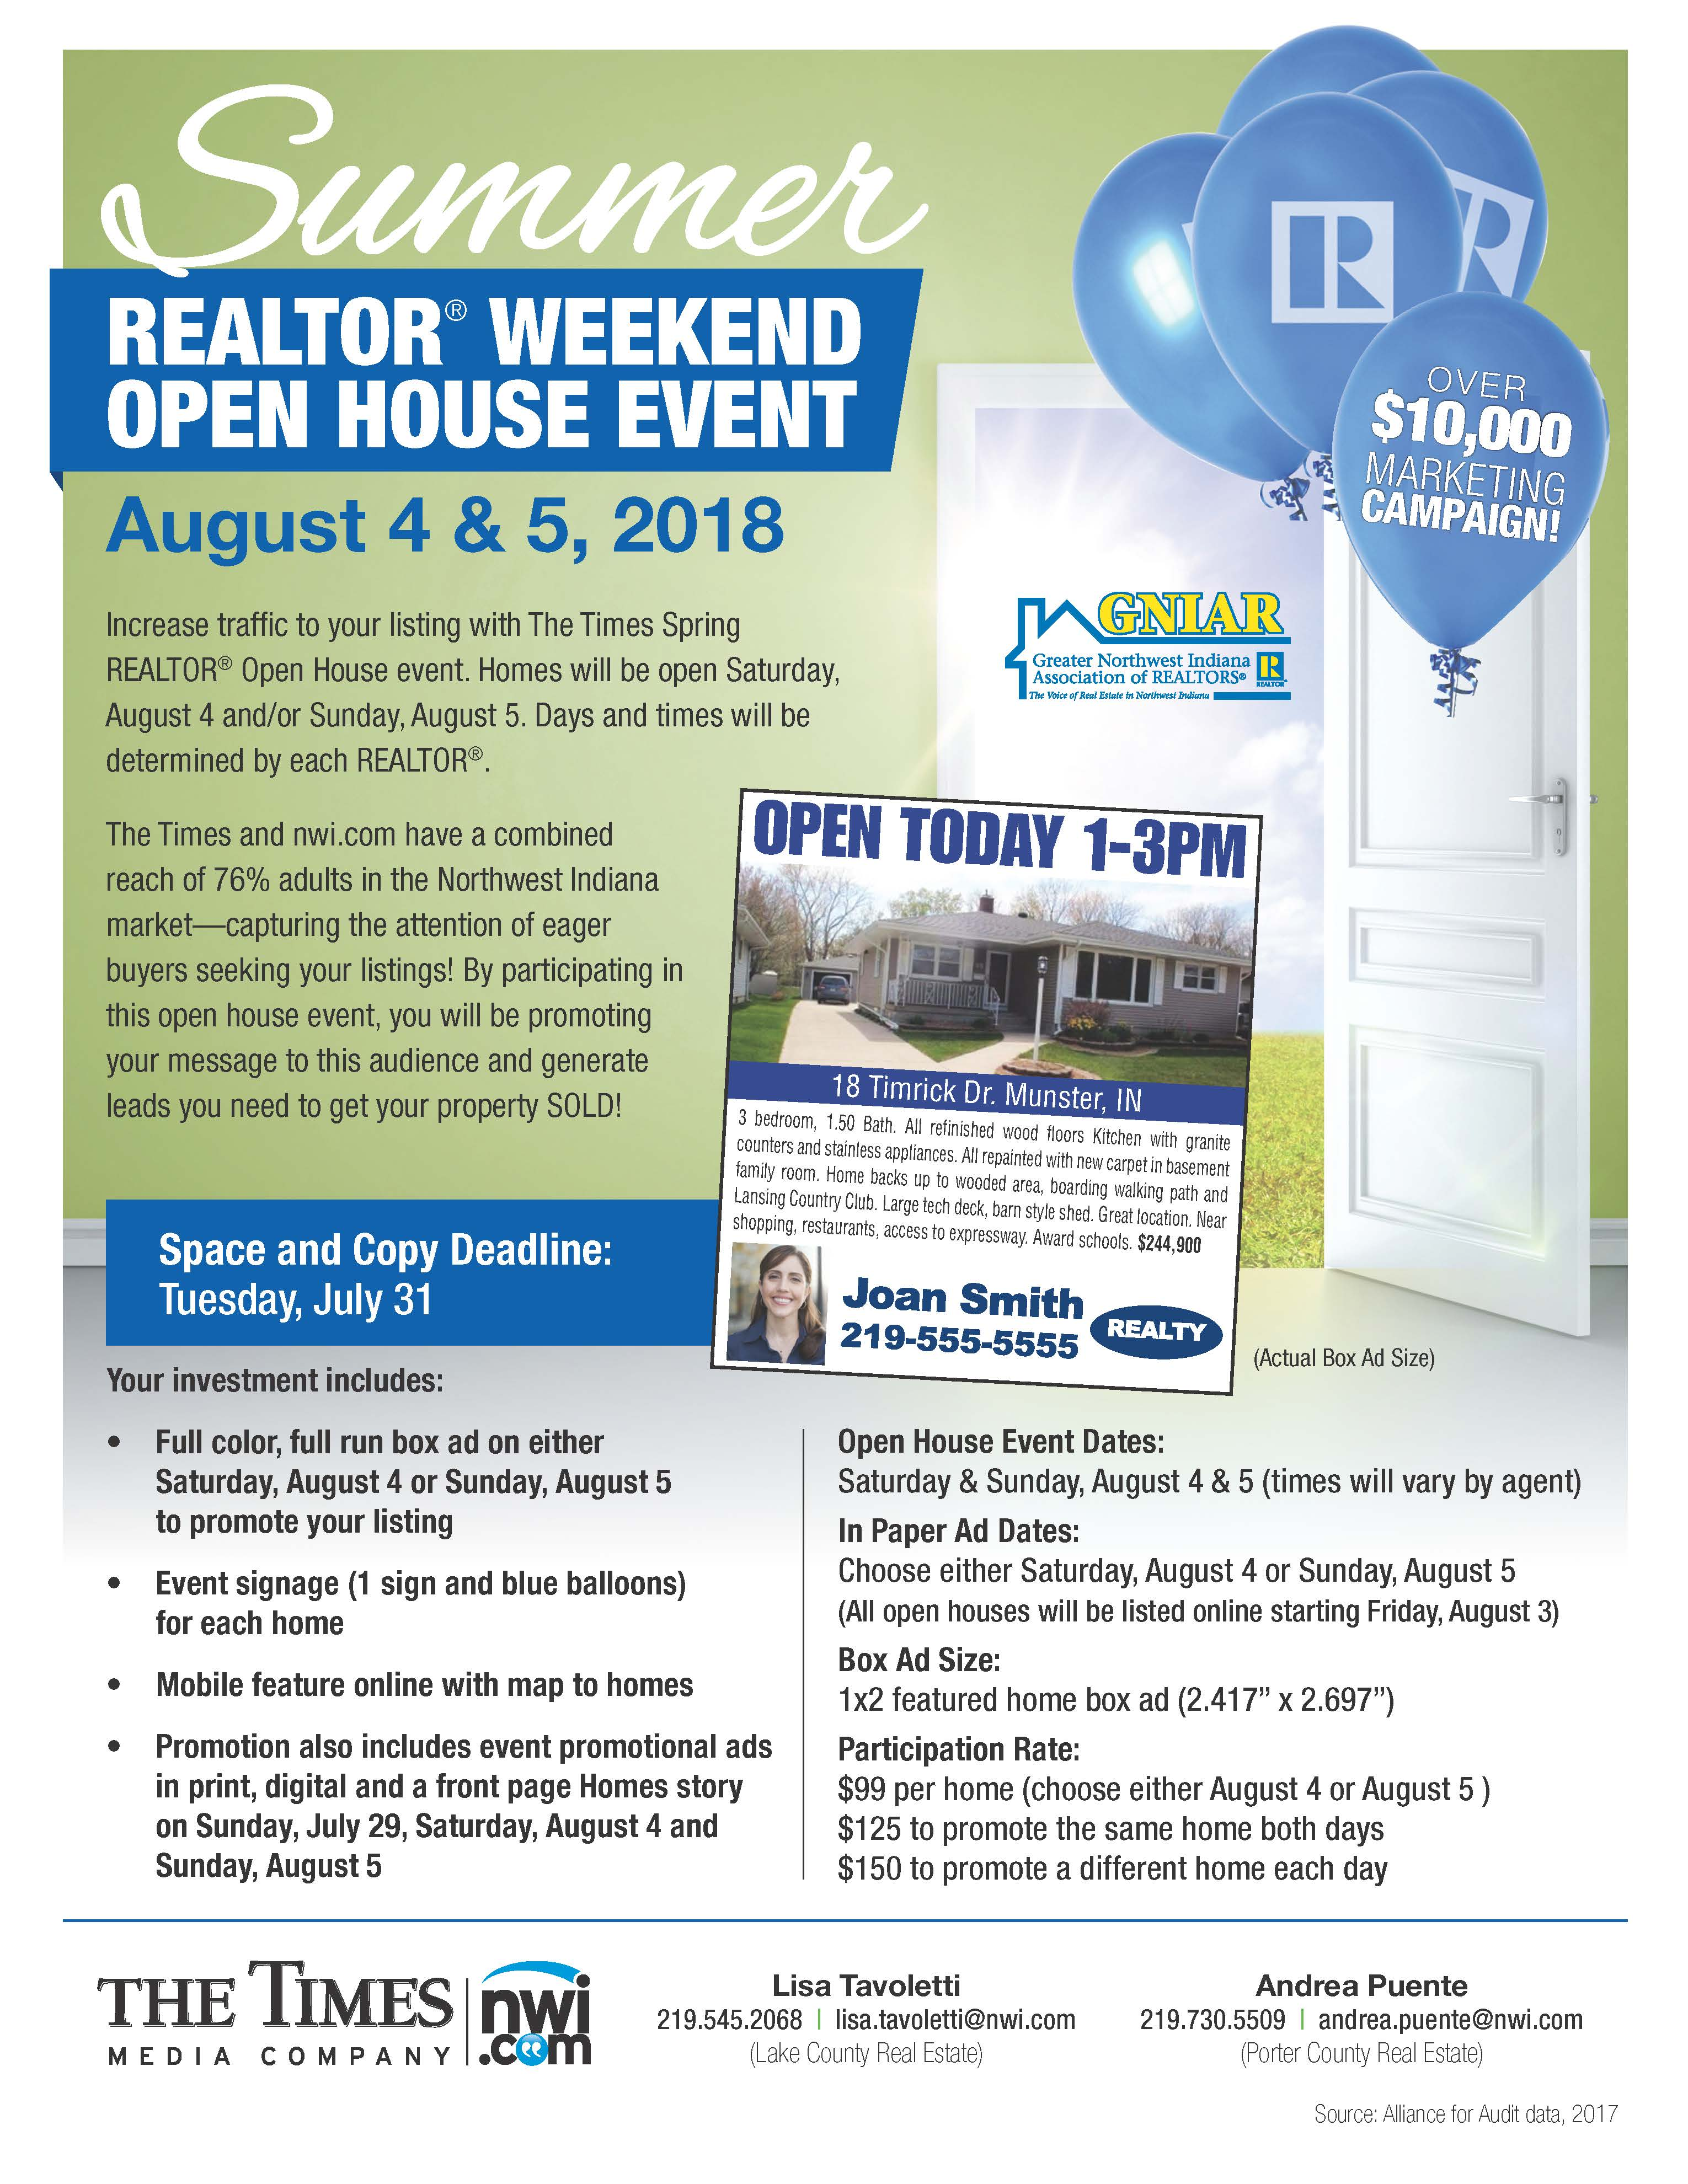 SummerRealtorOpenHouse Collateral 2018